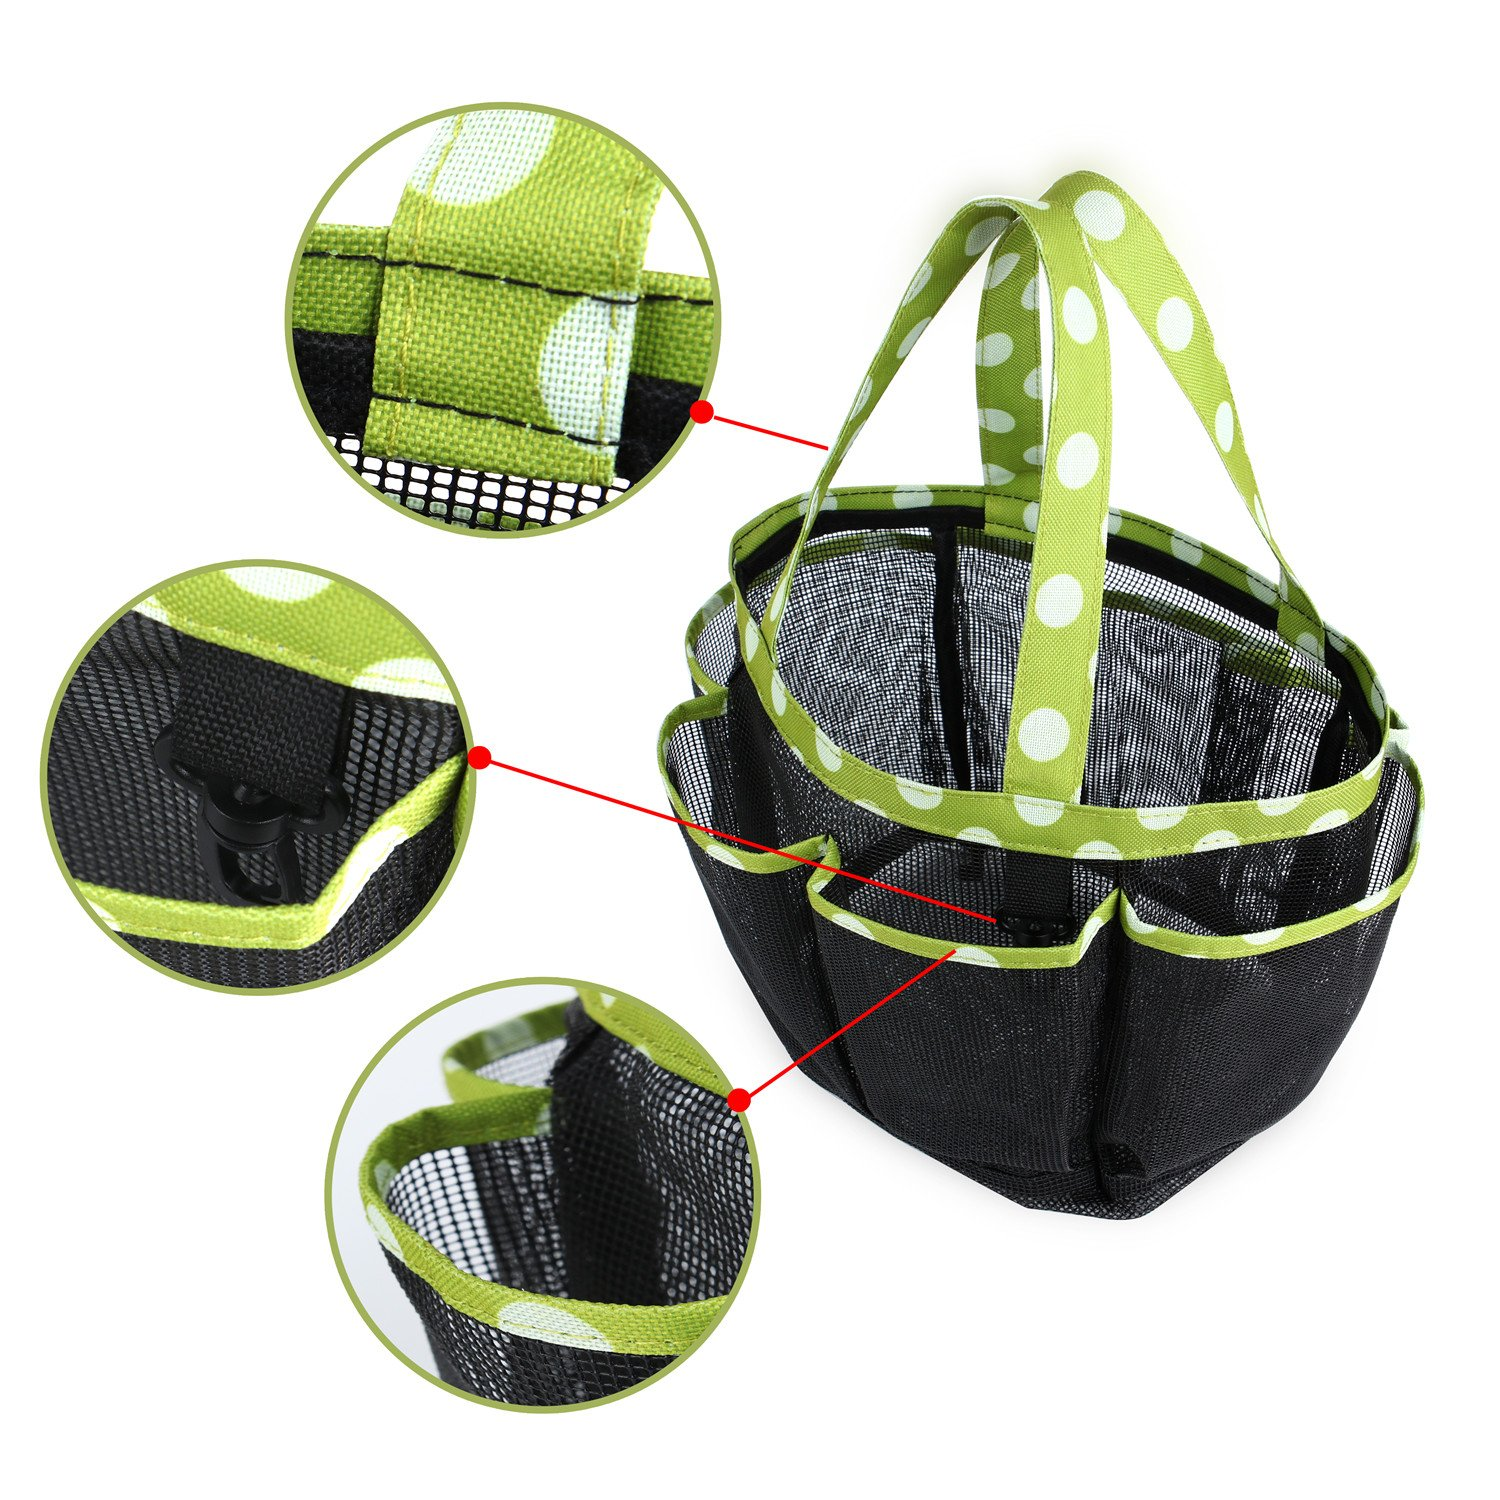 Portable Mesh Shower Caddy with 7 Storage Compartments & Key Hook, Quick Dry Hanging Toiletry and Bath Organizer, Perfect for Dorm, Camping ,Gym, Yoga,Camp & Travel, Green